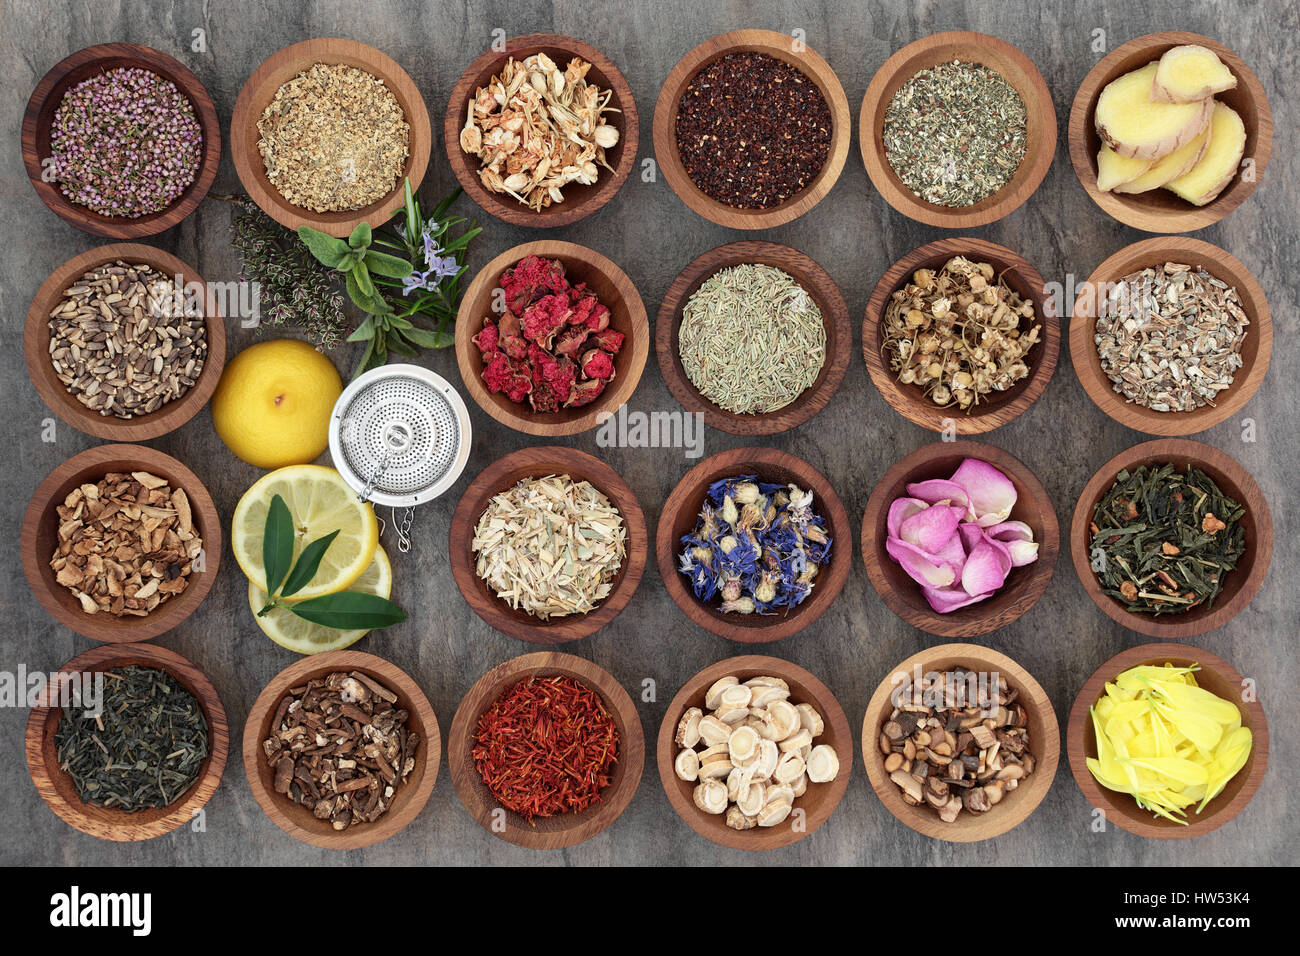 Healthy herb tea selection in wooden bowls and loose with strainer, teas also used in alternative medicine. - Stock Image